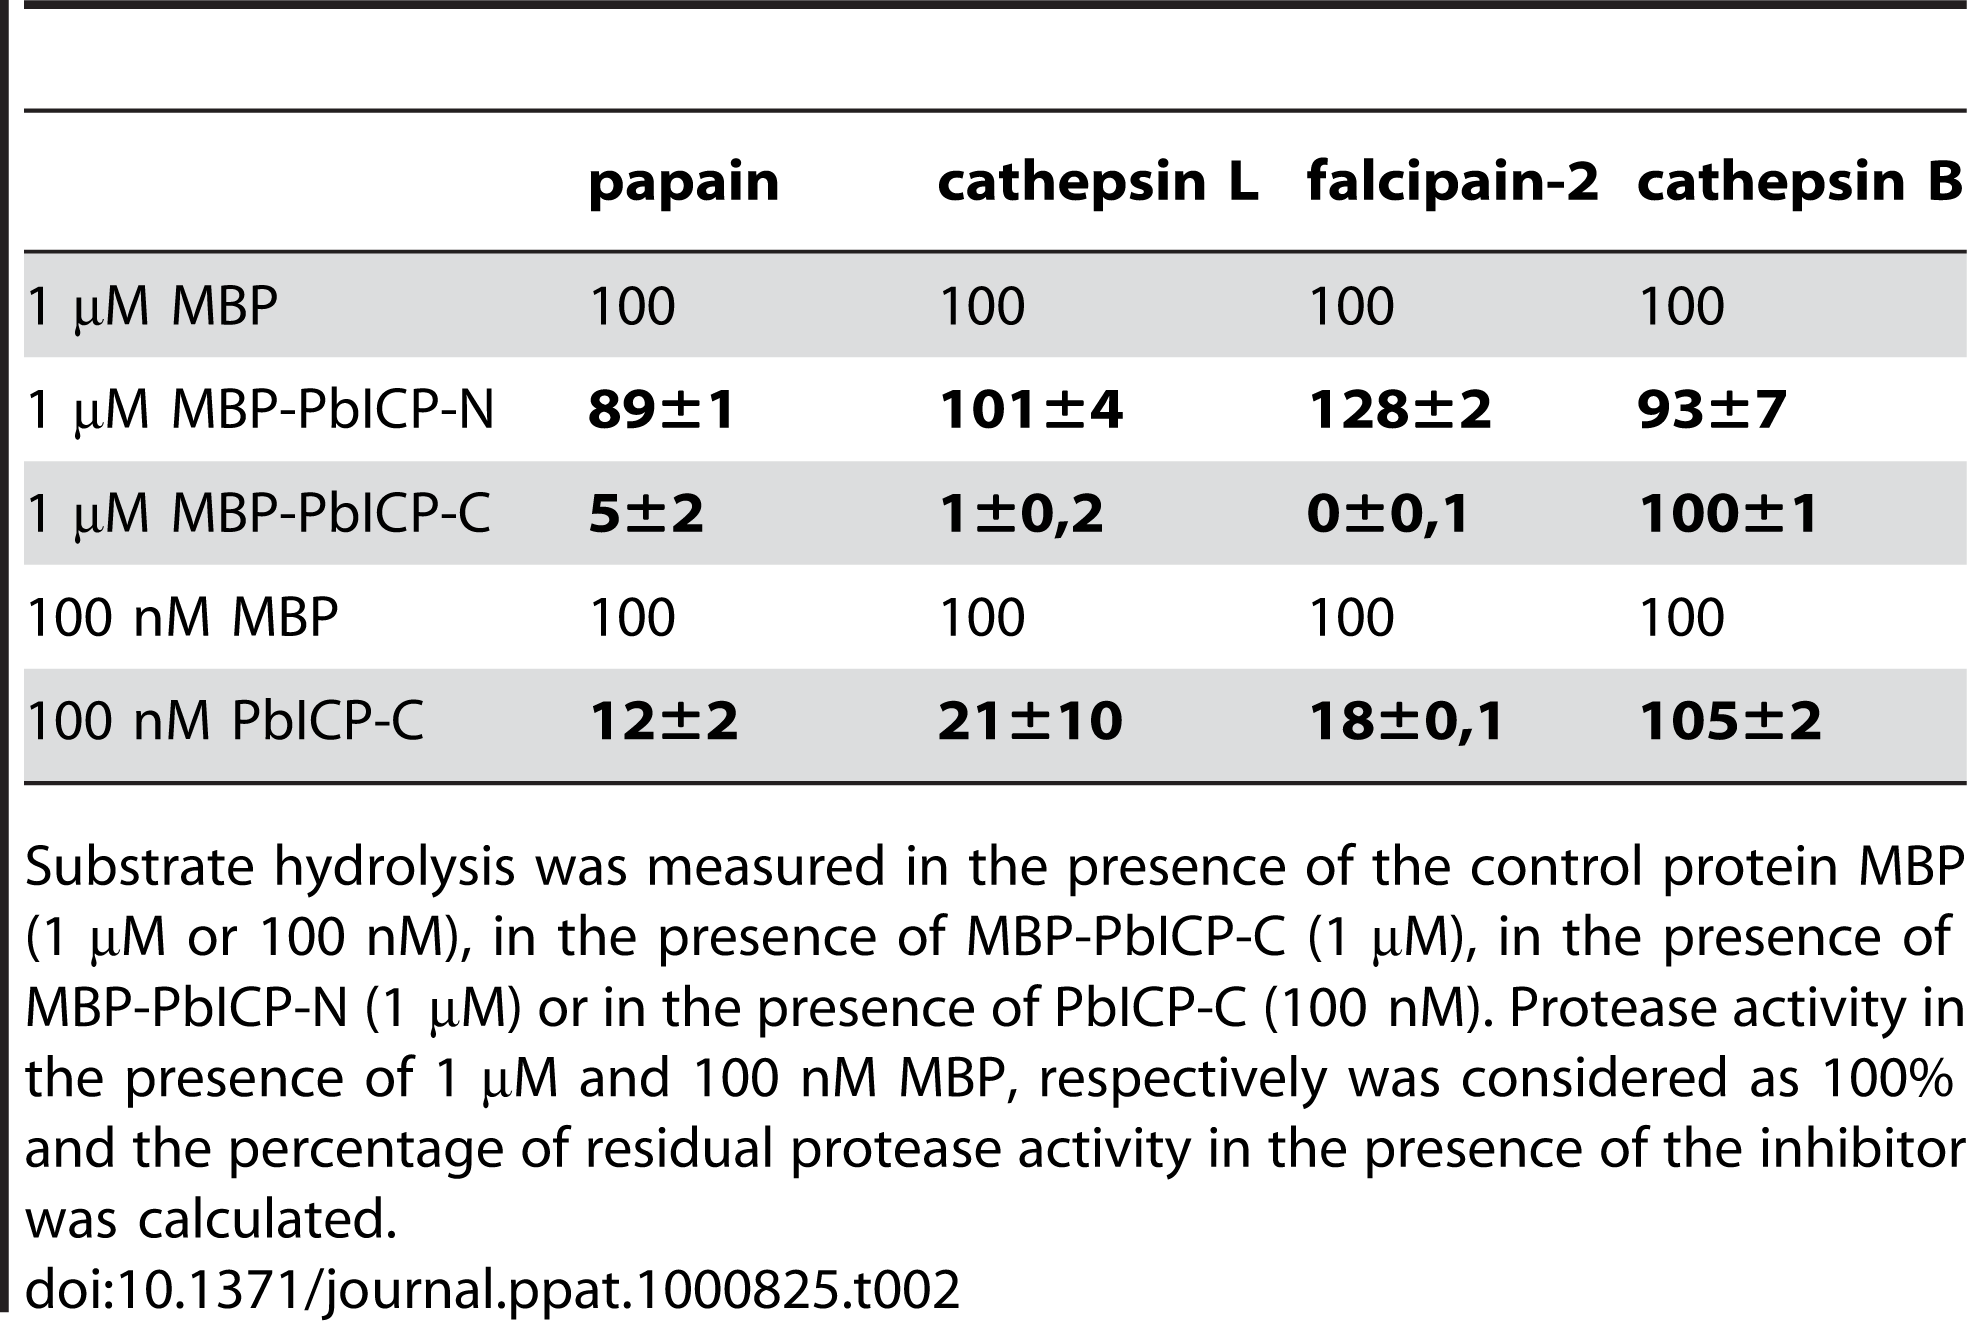 The C-terminal domain but not the N-terminal domain of PbICP is a potent inhibitor of cysteine proteases except cathepsin B.